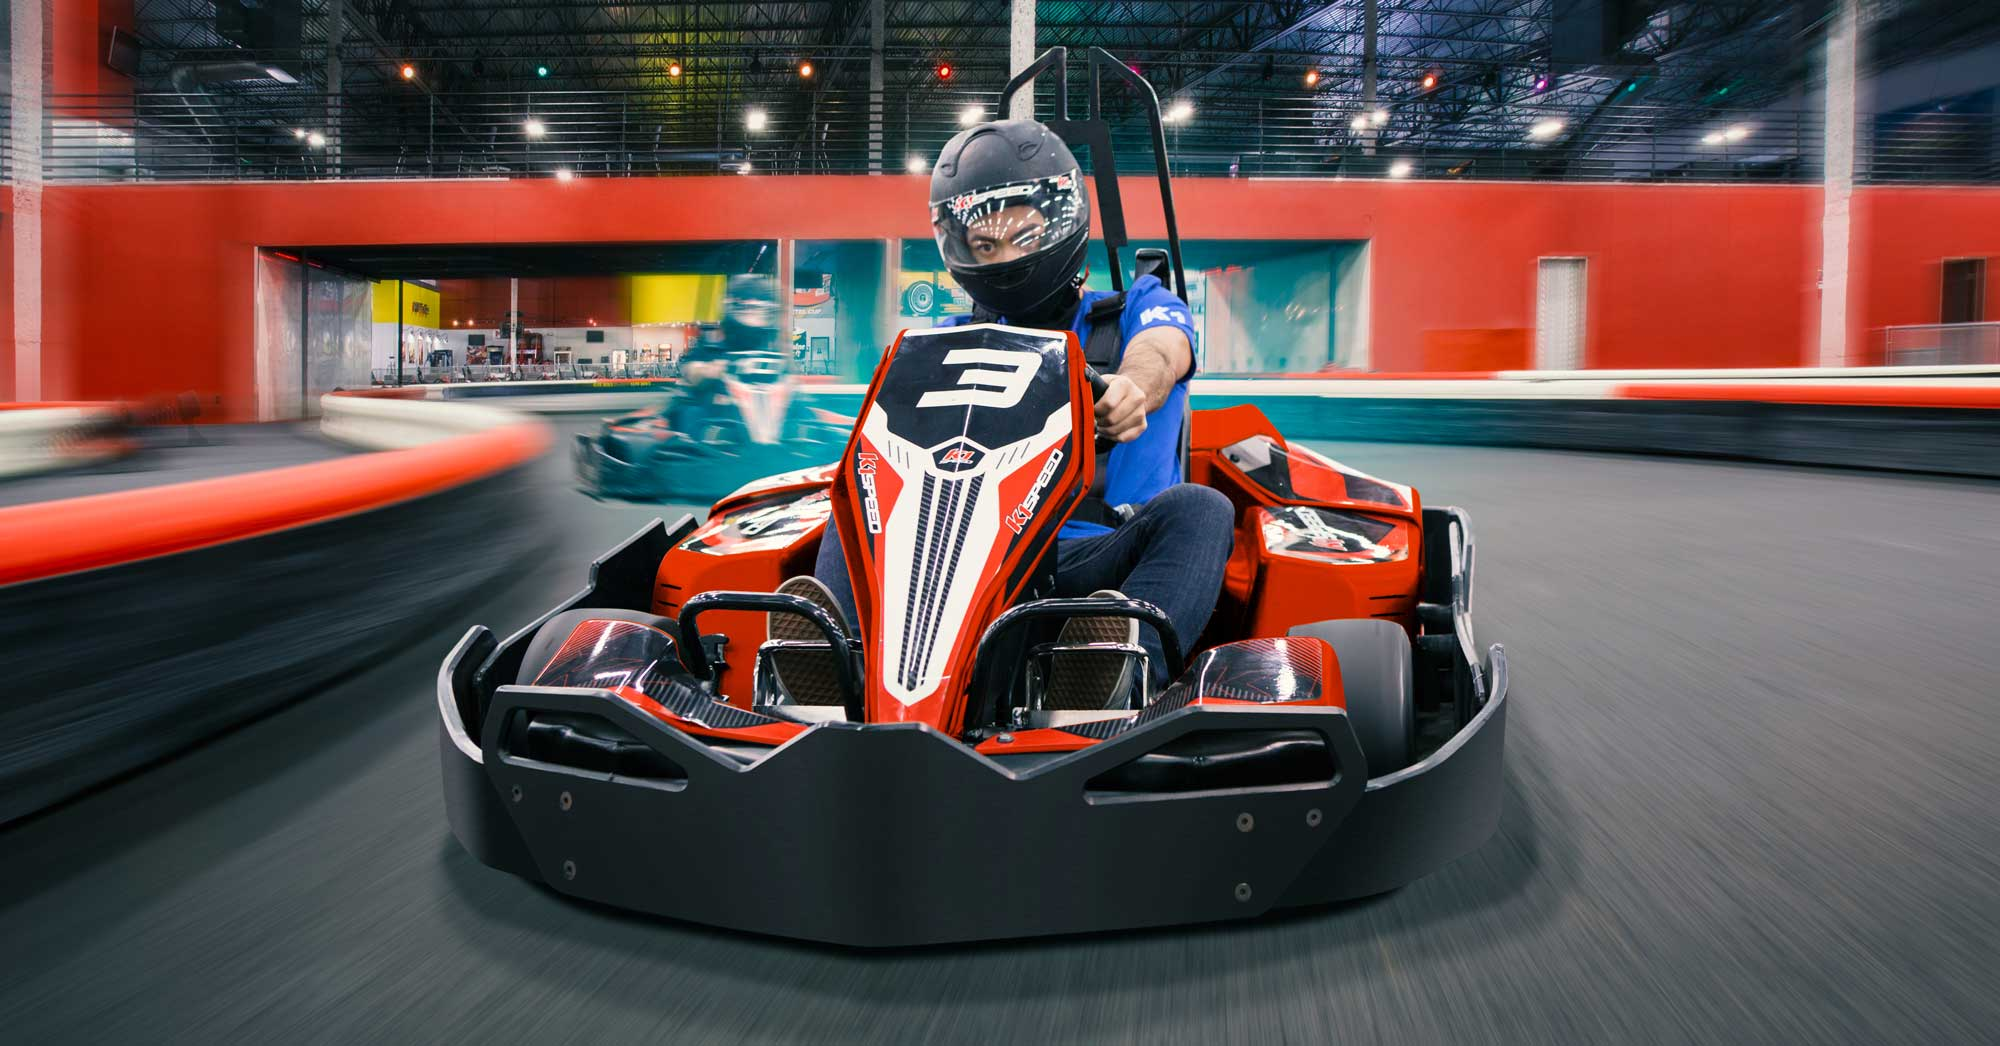 ABOUT K1 SPEED. Founded in , K1 Speed is the United States' largest indoor kart racing operator with 40 centers across the globe and offers a unique upscale entertainment concept for casual.